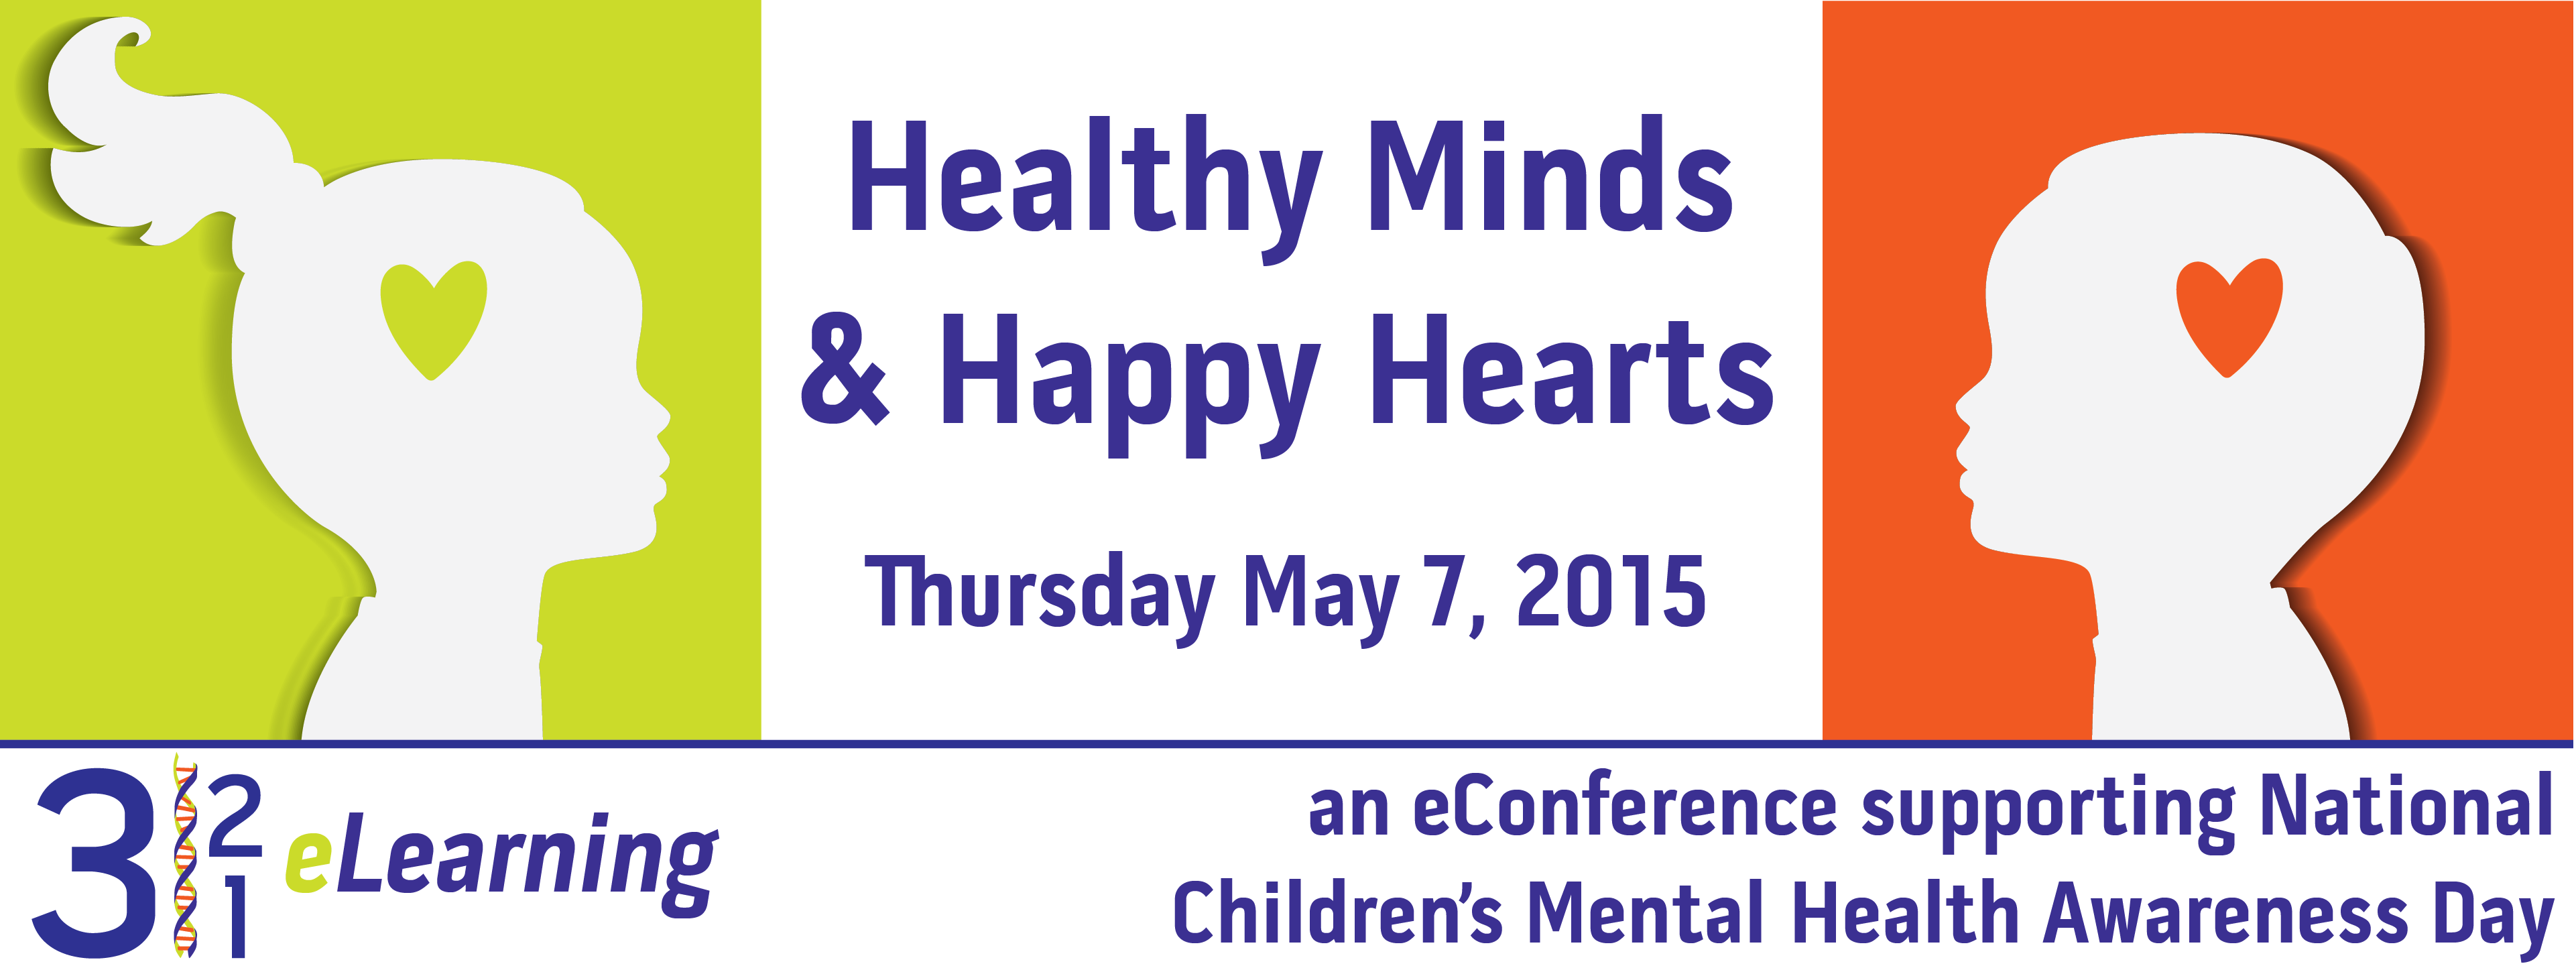 Healthy Minds, Happy Hearts Special Needs E-Conference